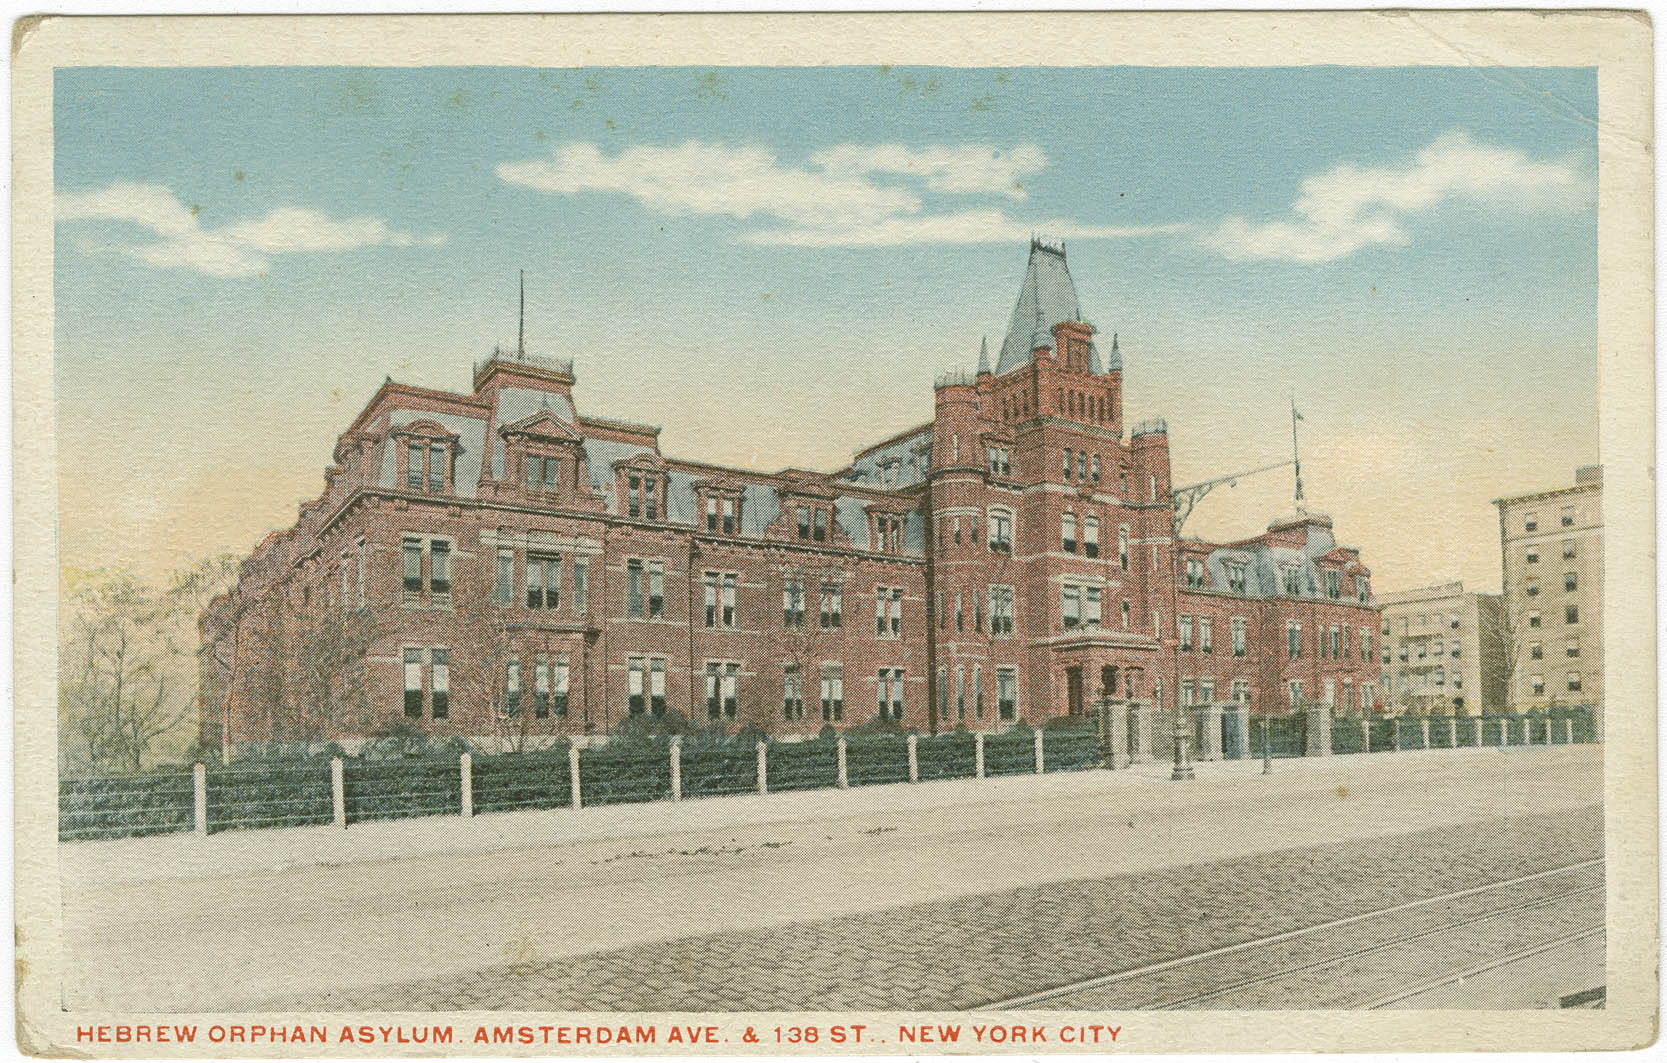 Hebrew Orphan Asylum. Amsterdam Ave. & 138 St. New York City.